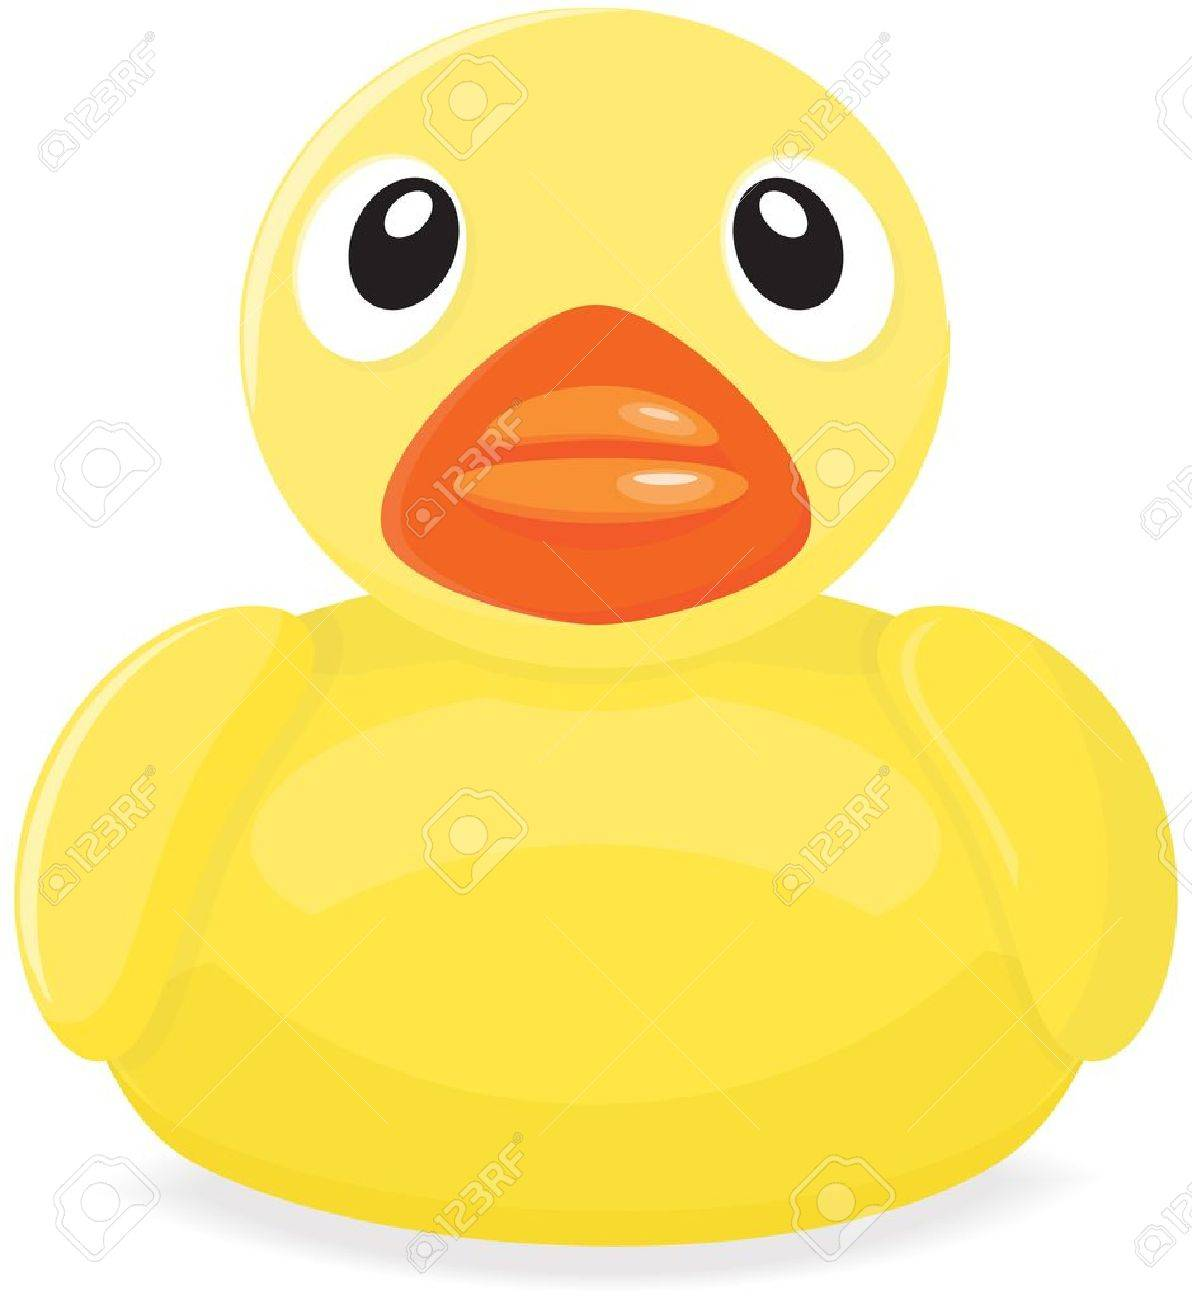 1192x1300 Yellow Rubber Duck Drawing. Royalty Free Cliparts, Vectors,